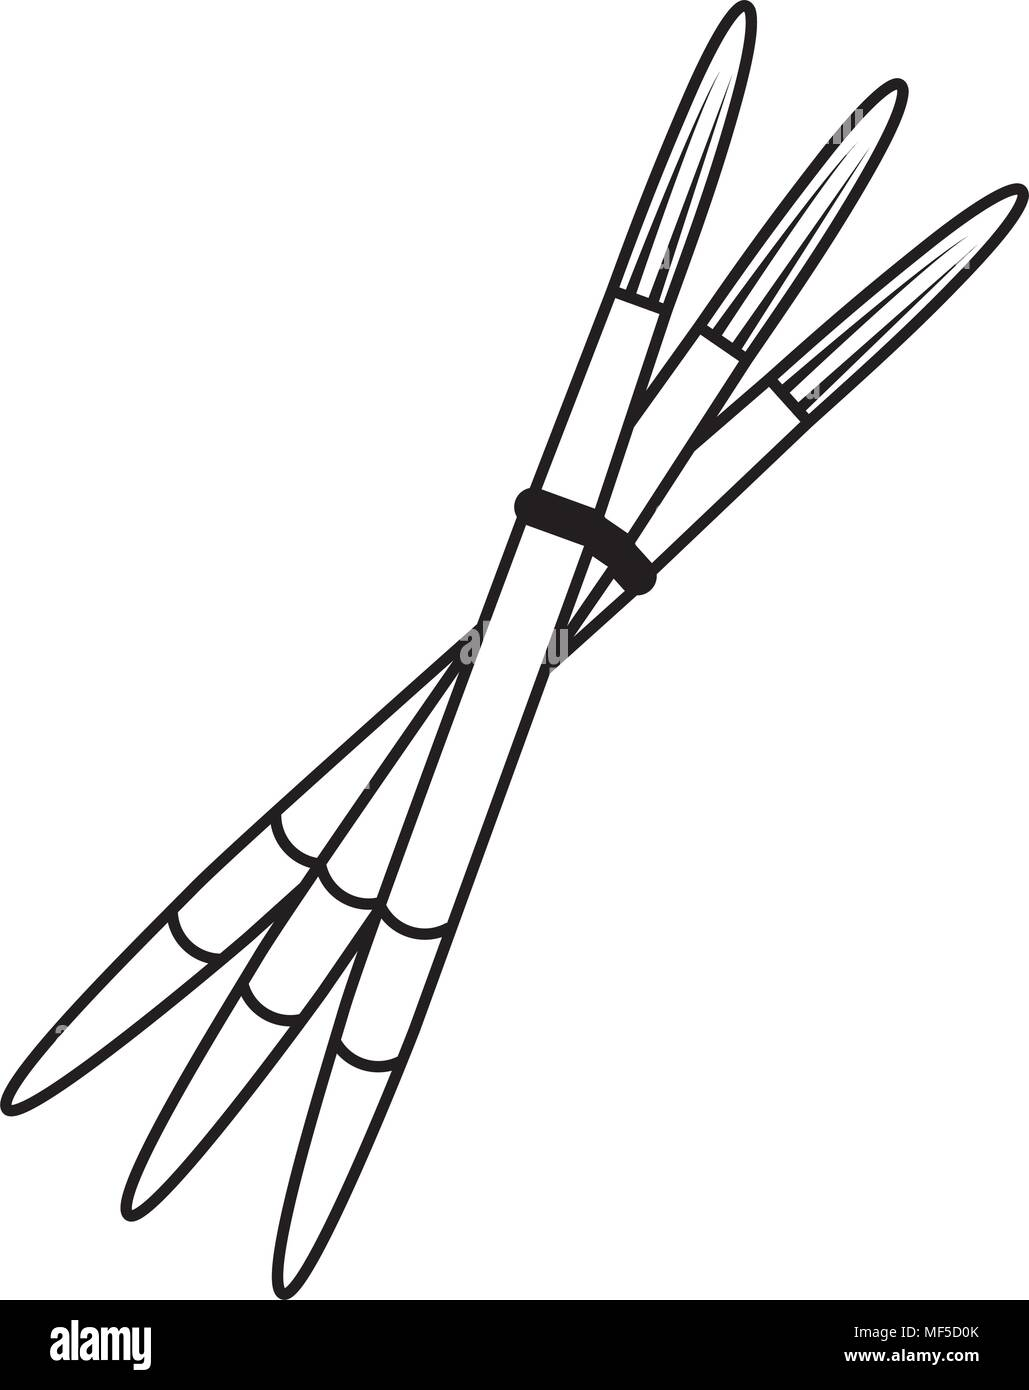 line drawing paintbrushes art and decoration tool - Stock Image